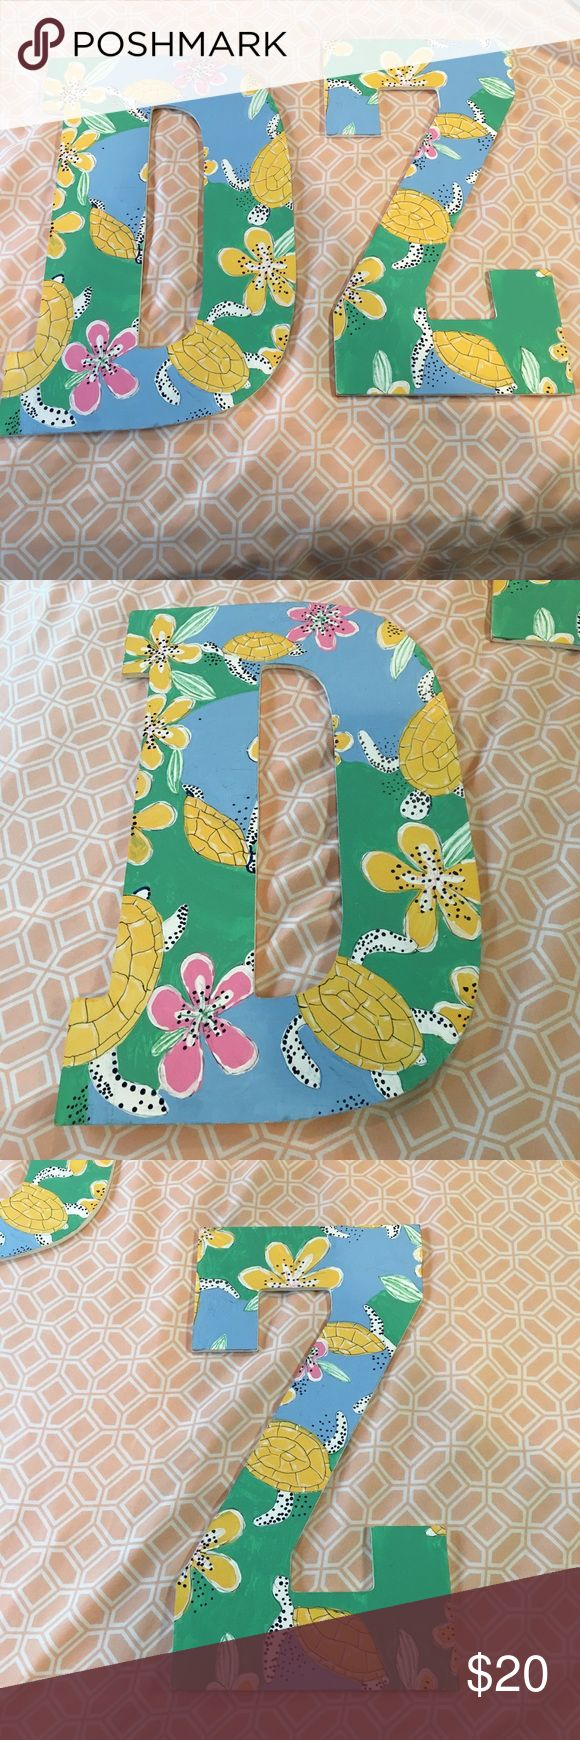 Hand painted Delta Zeta (DZ) large wooden letters Hand painted turtle/beach design in colors of blue, green, yellow, white, and pink. Other